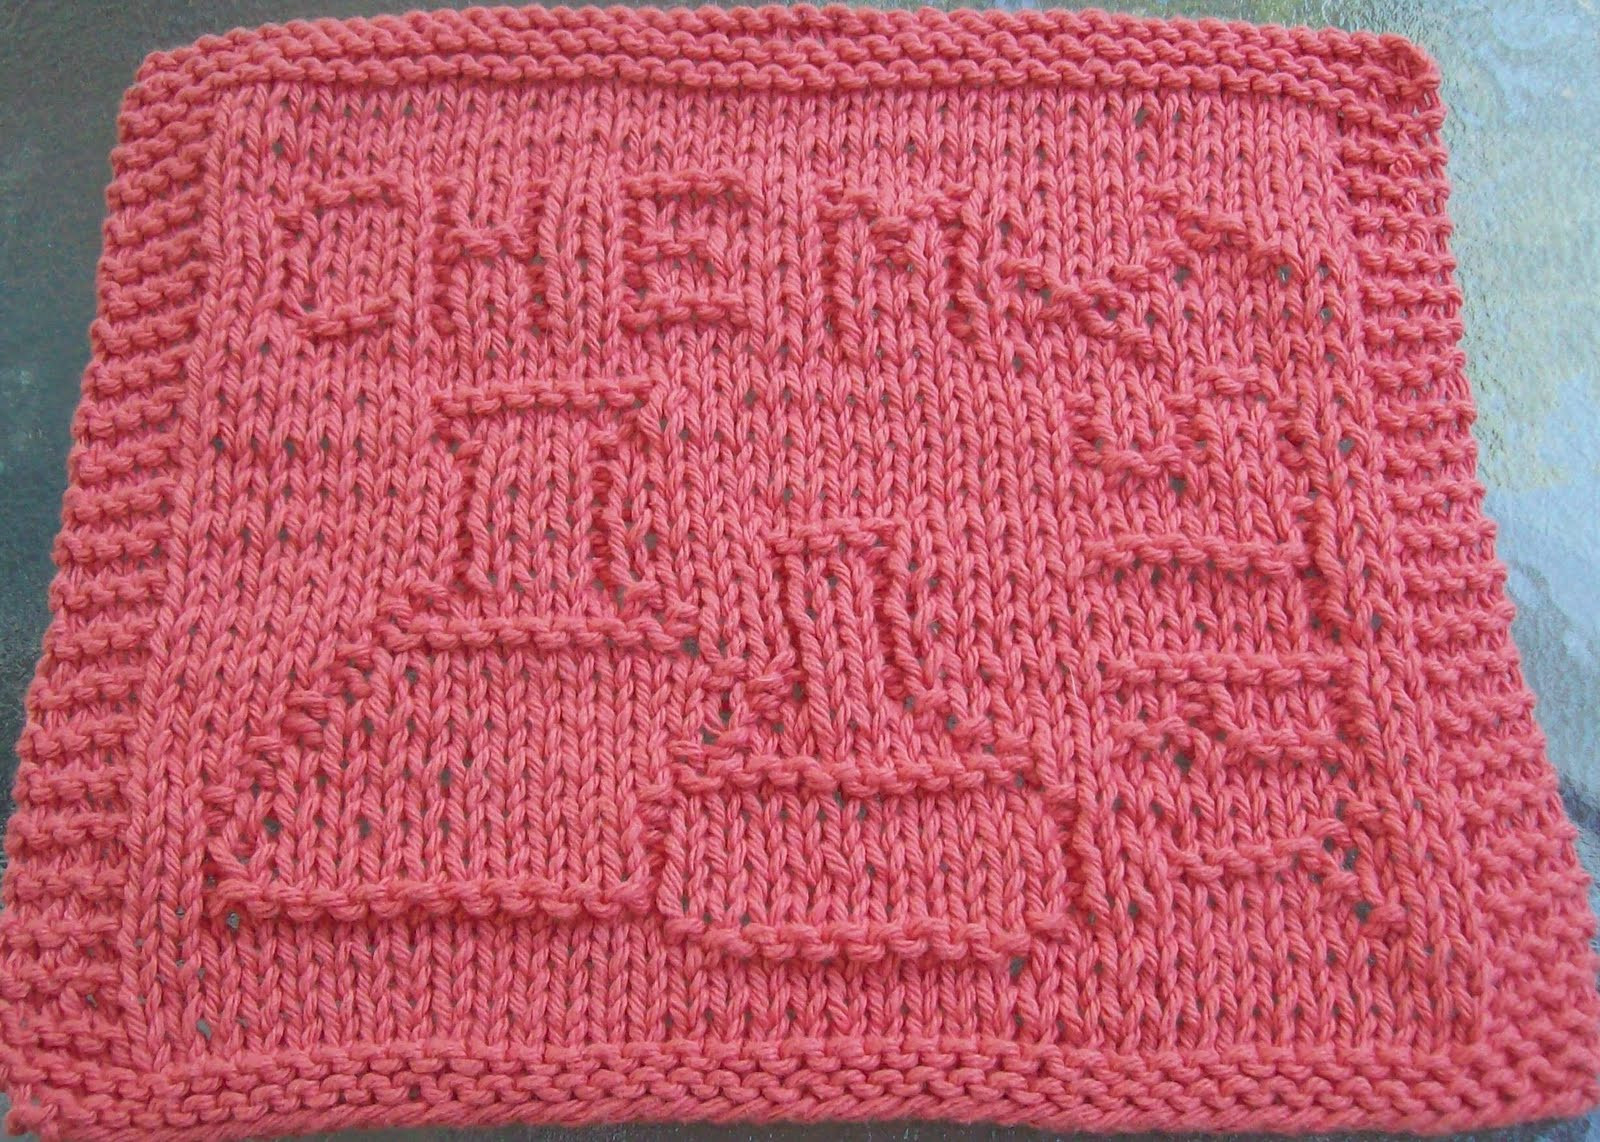 Knitted Dishcloth Patterns Bing images